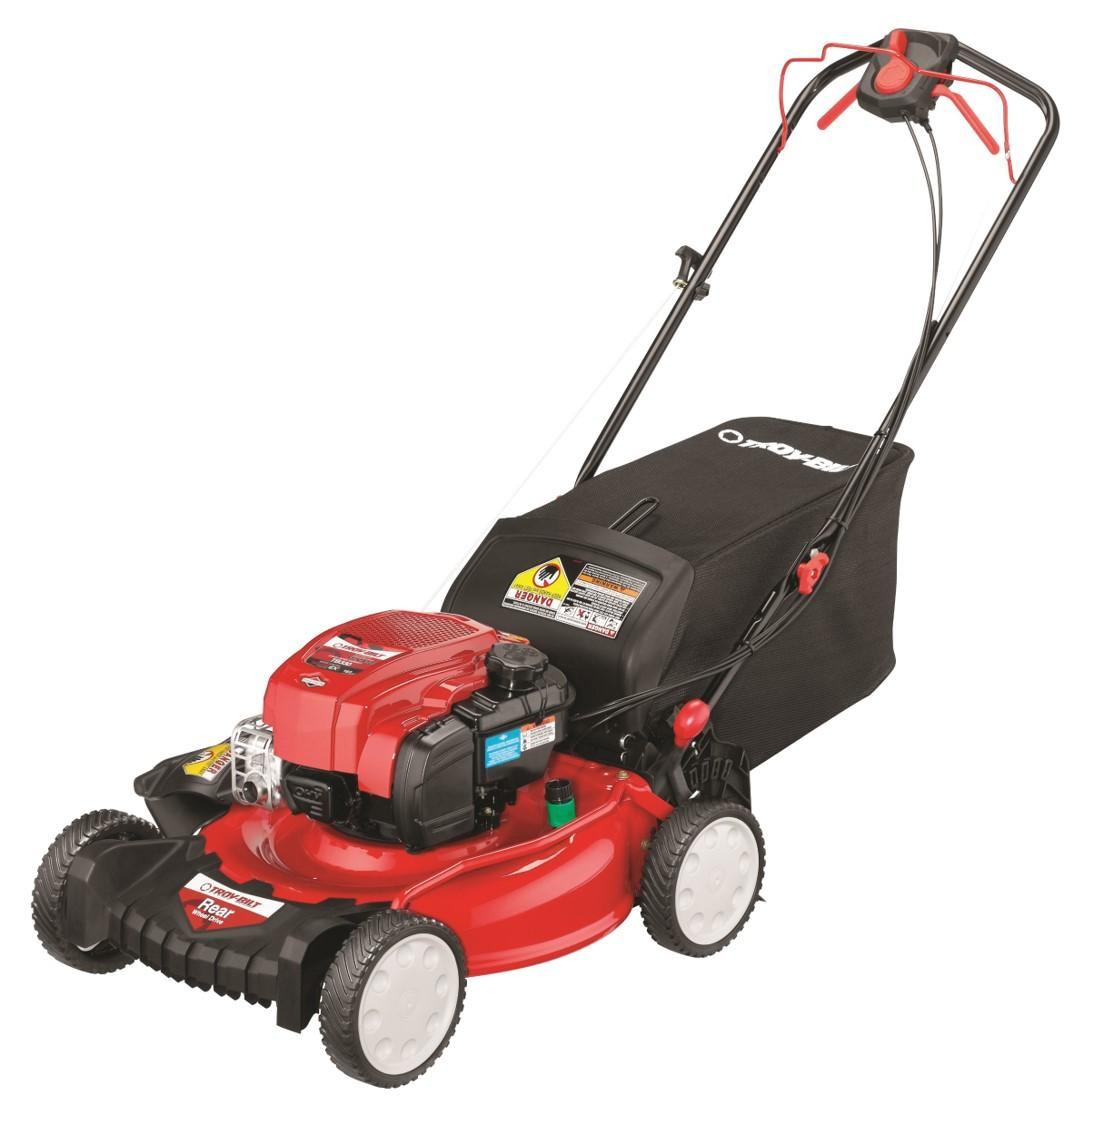 Troy Bilt Tb330 163cc 21 Inch 3 In 1 Rear Wheel Drive 38quot Lawn Tractor Page 5 Diagram And Parts List For Mtd Ridingmower View Larger